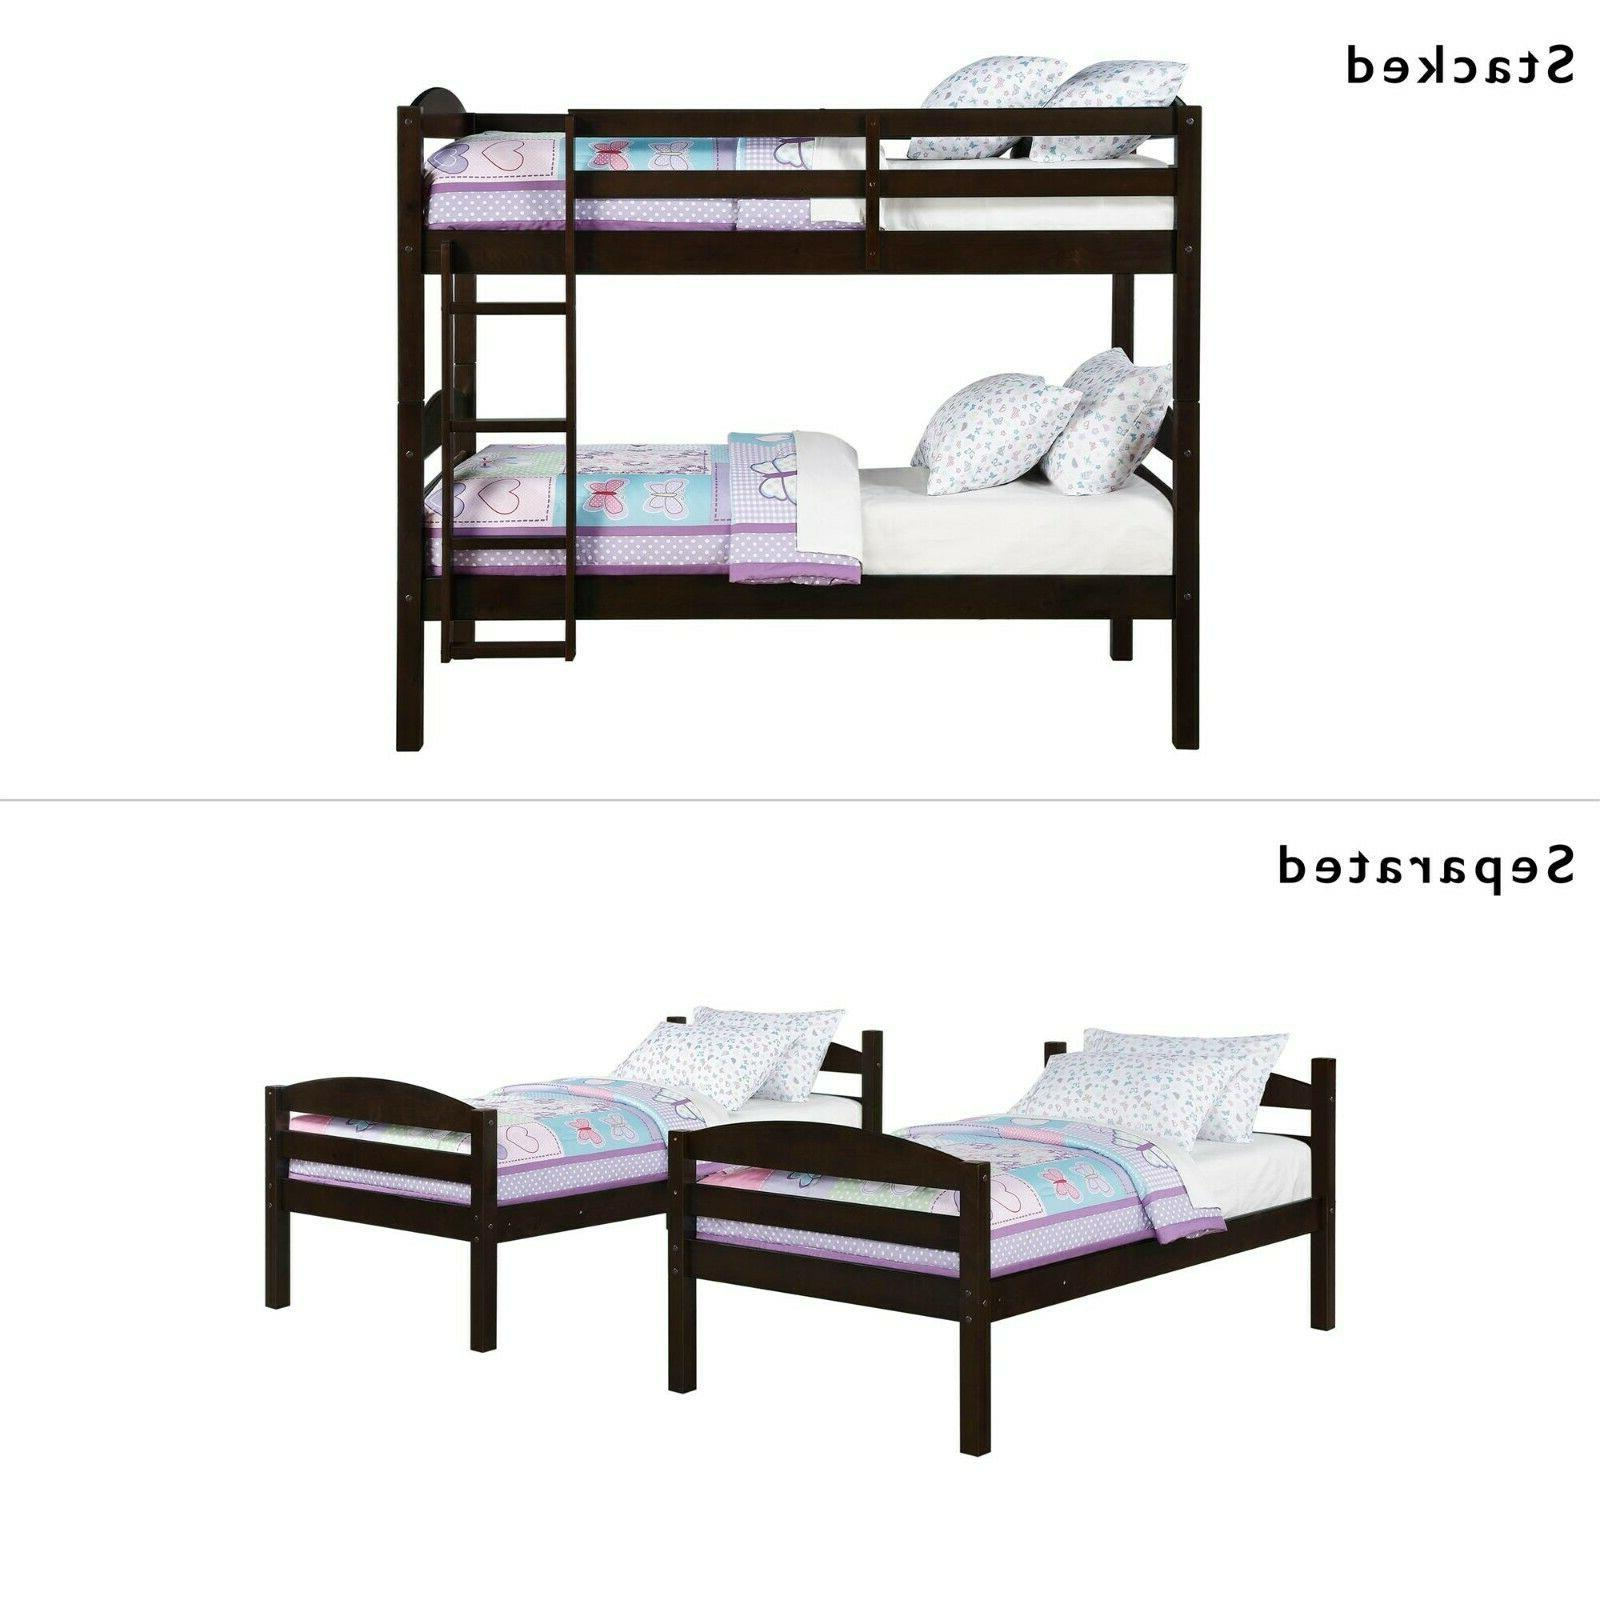 Bunk Kids Twin Over Twin Bunked Bed Frame Bedroom Furniture